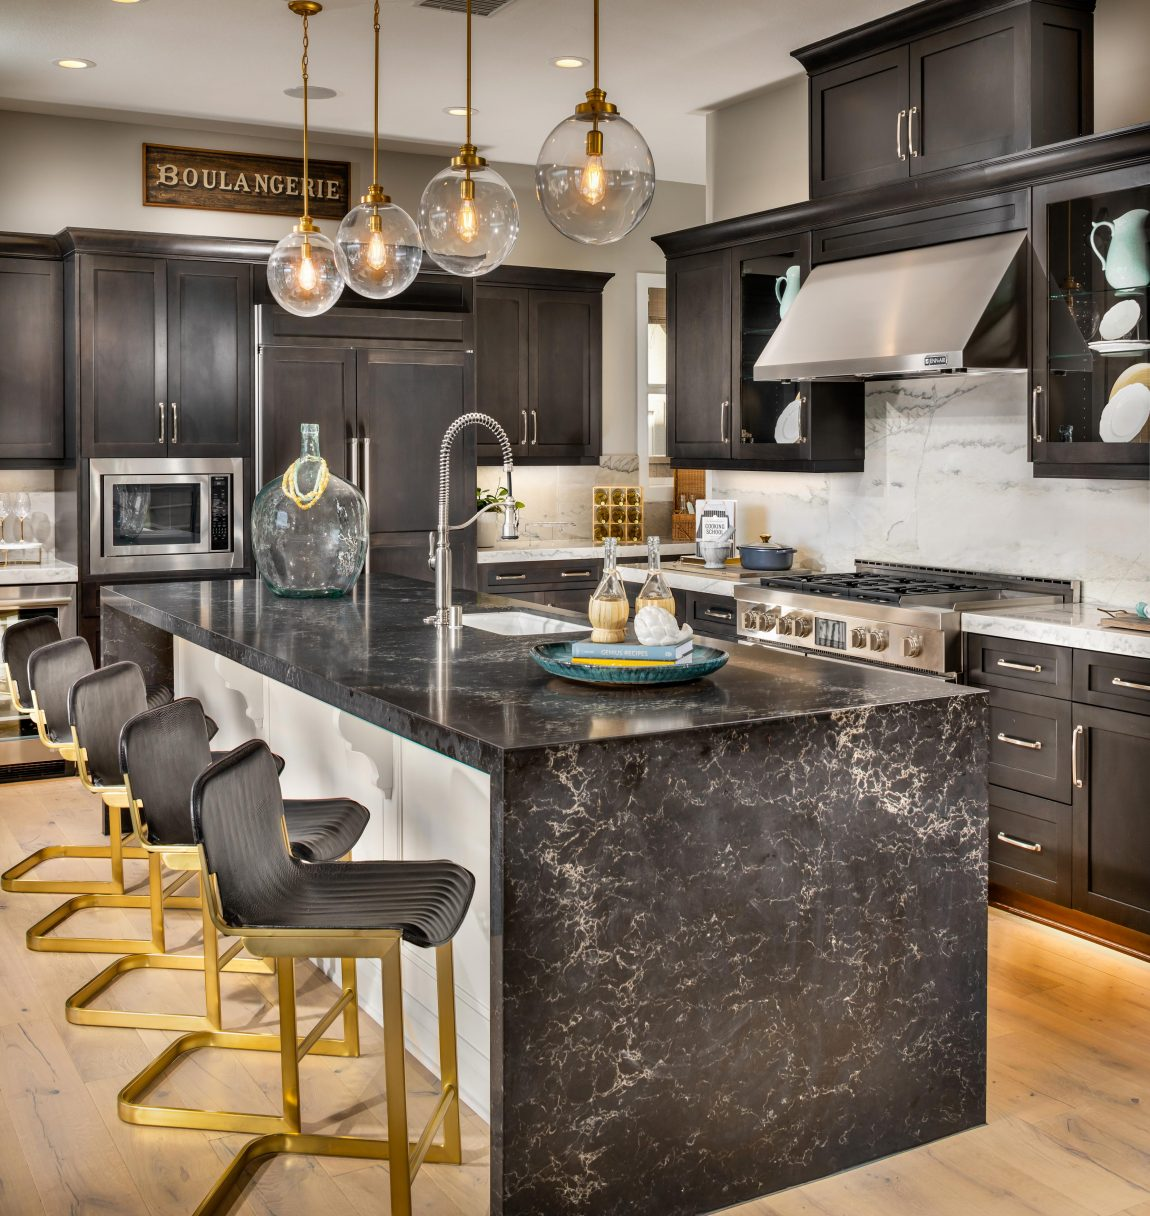 Luxury Kitchen with Dark Cabinetry and Gold Accents